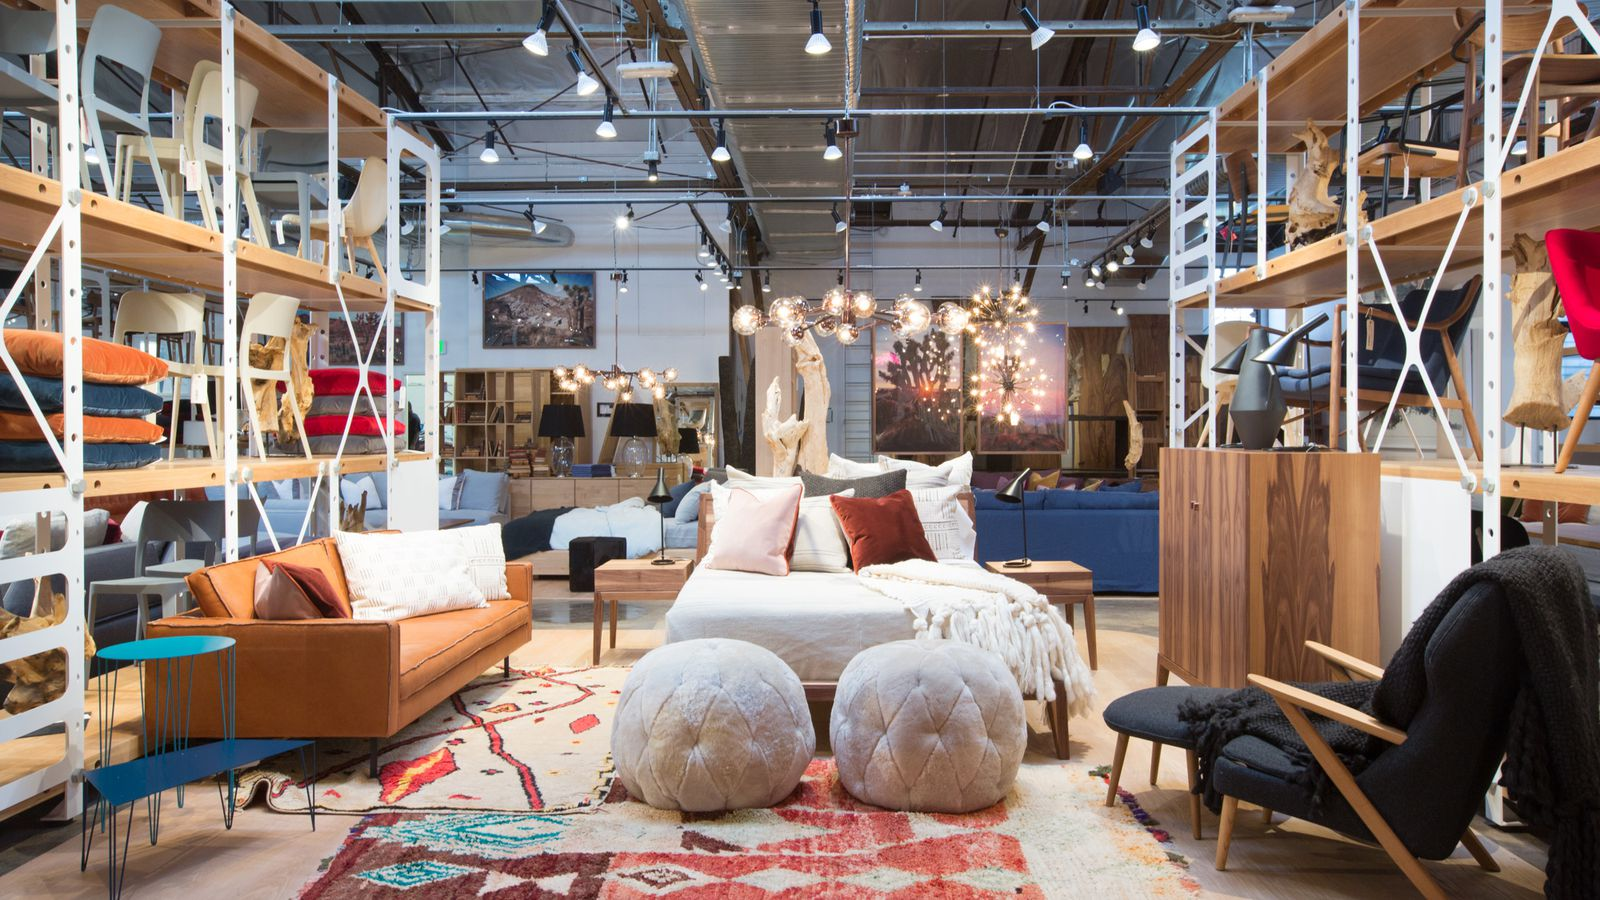 Explore HD Buttercup39s Dreamy Home Furnishings Haven in the Arts